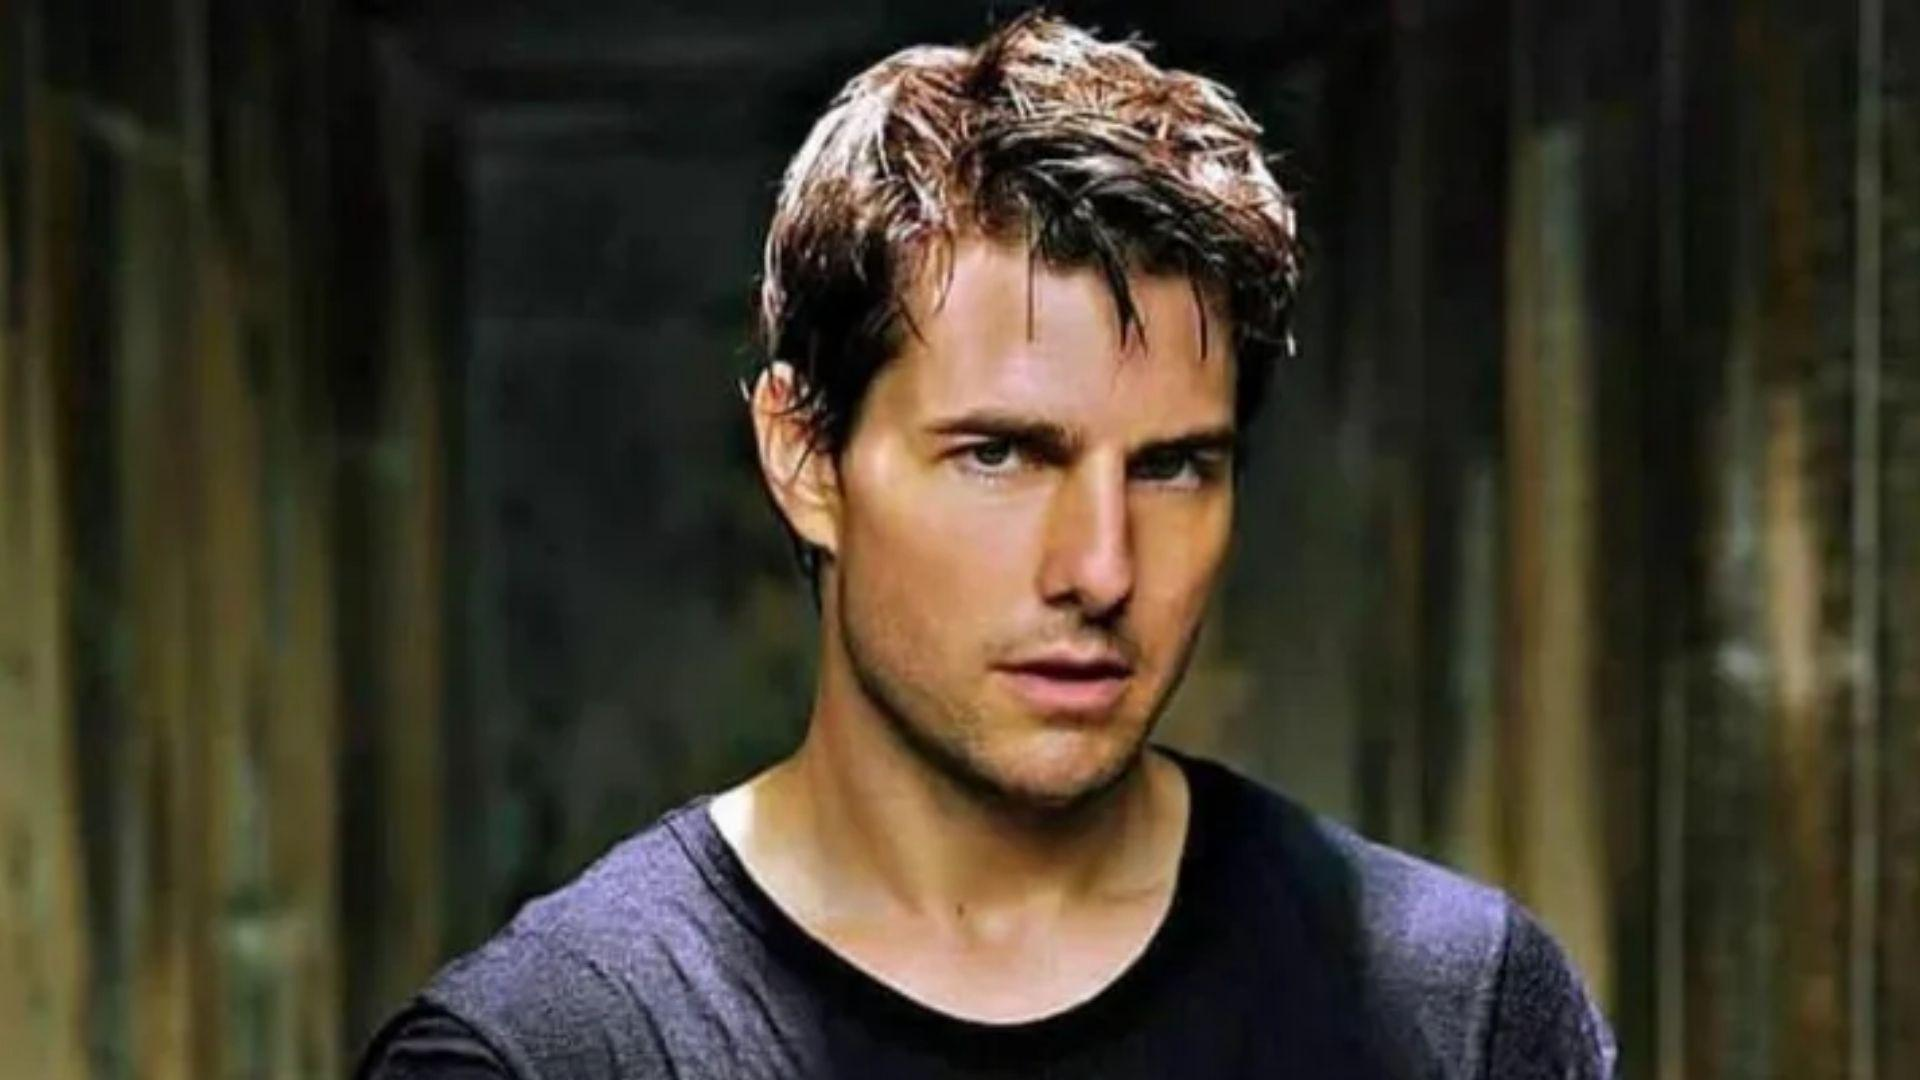 Top 10 Best Tom Cruise Movies Greatest all time Favorite